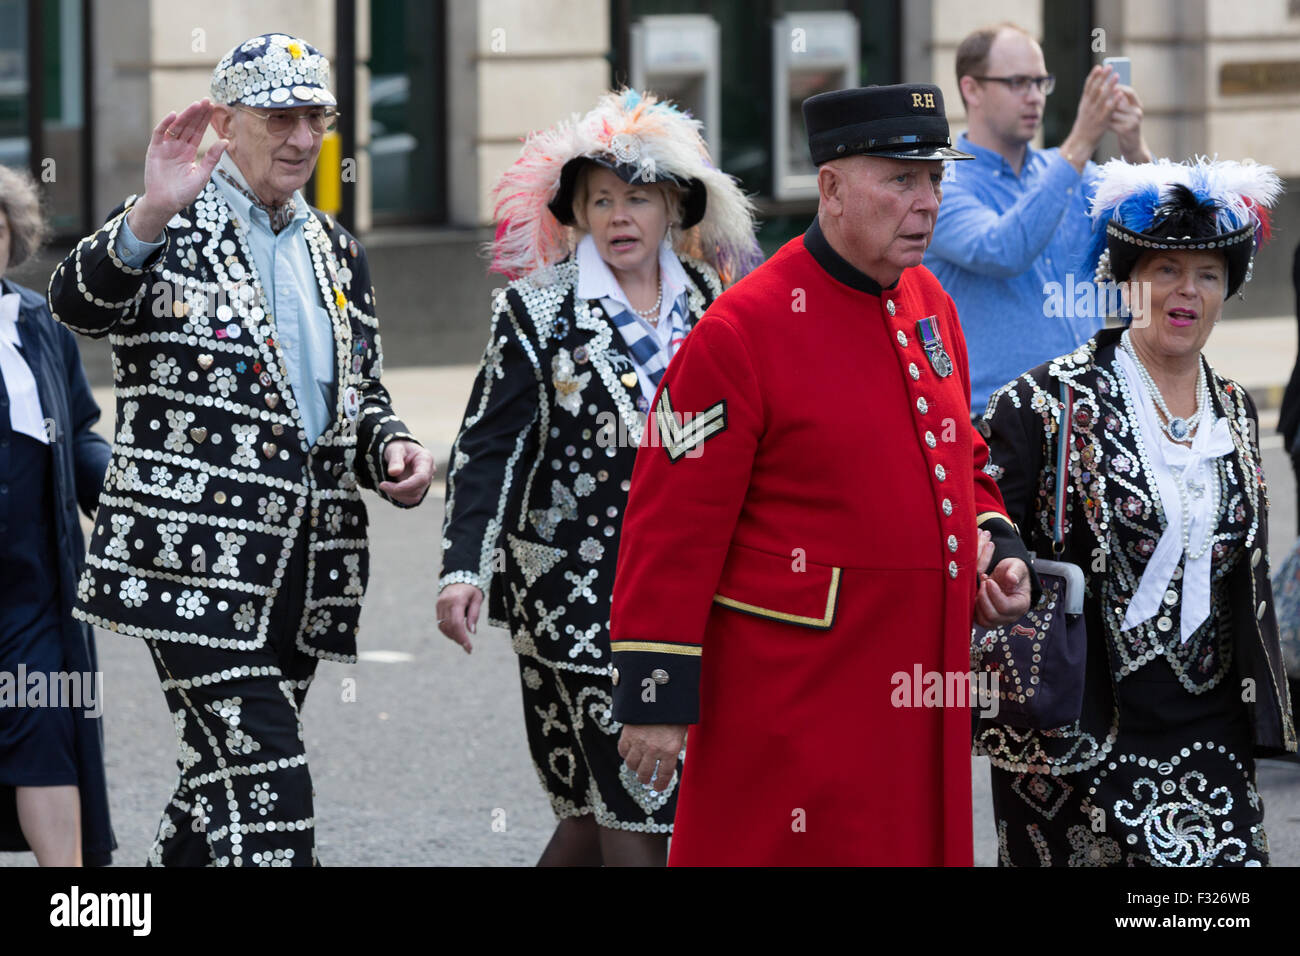 Pearly Kings and Queens celebrate the harvest festival, wearing their traditional pearl-button suits as they parade Stock Photo